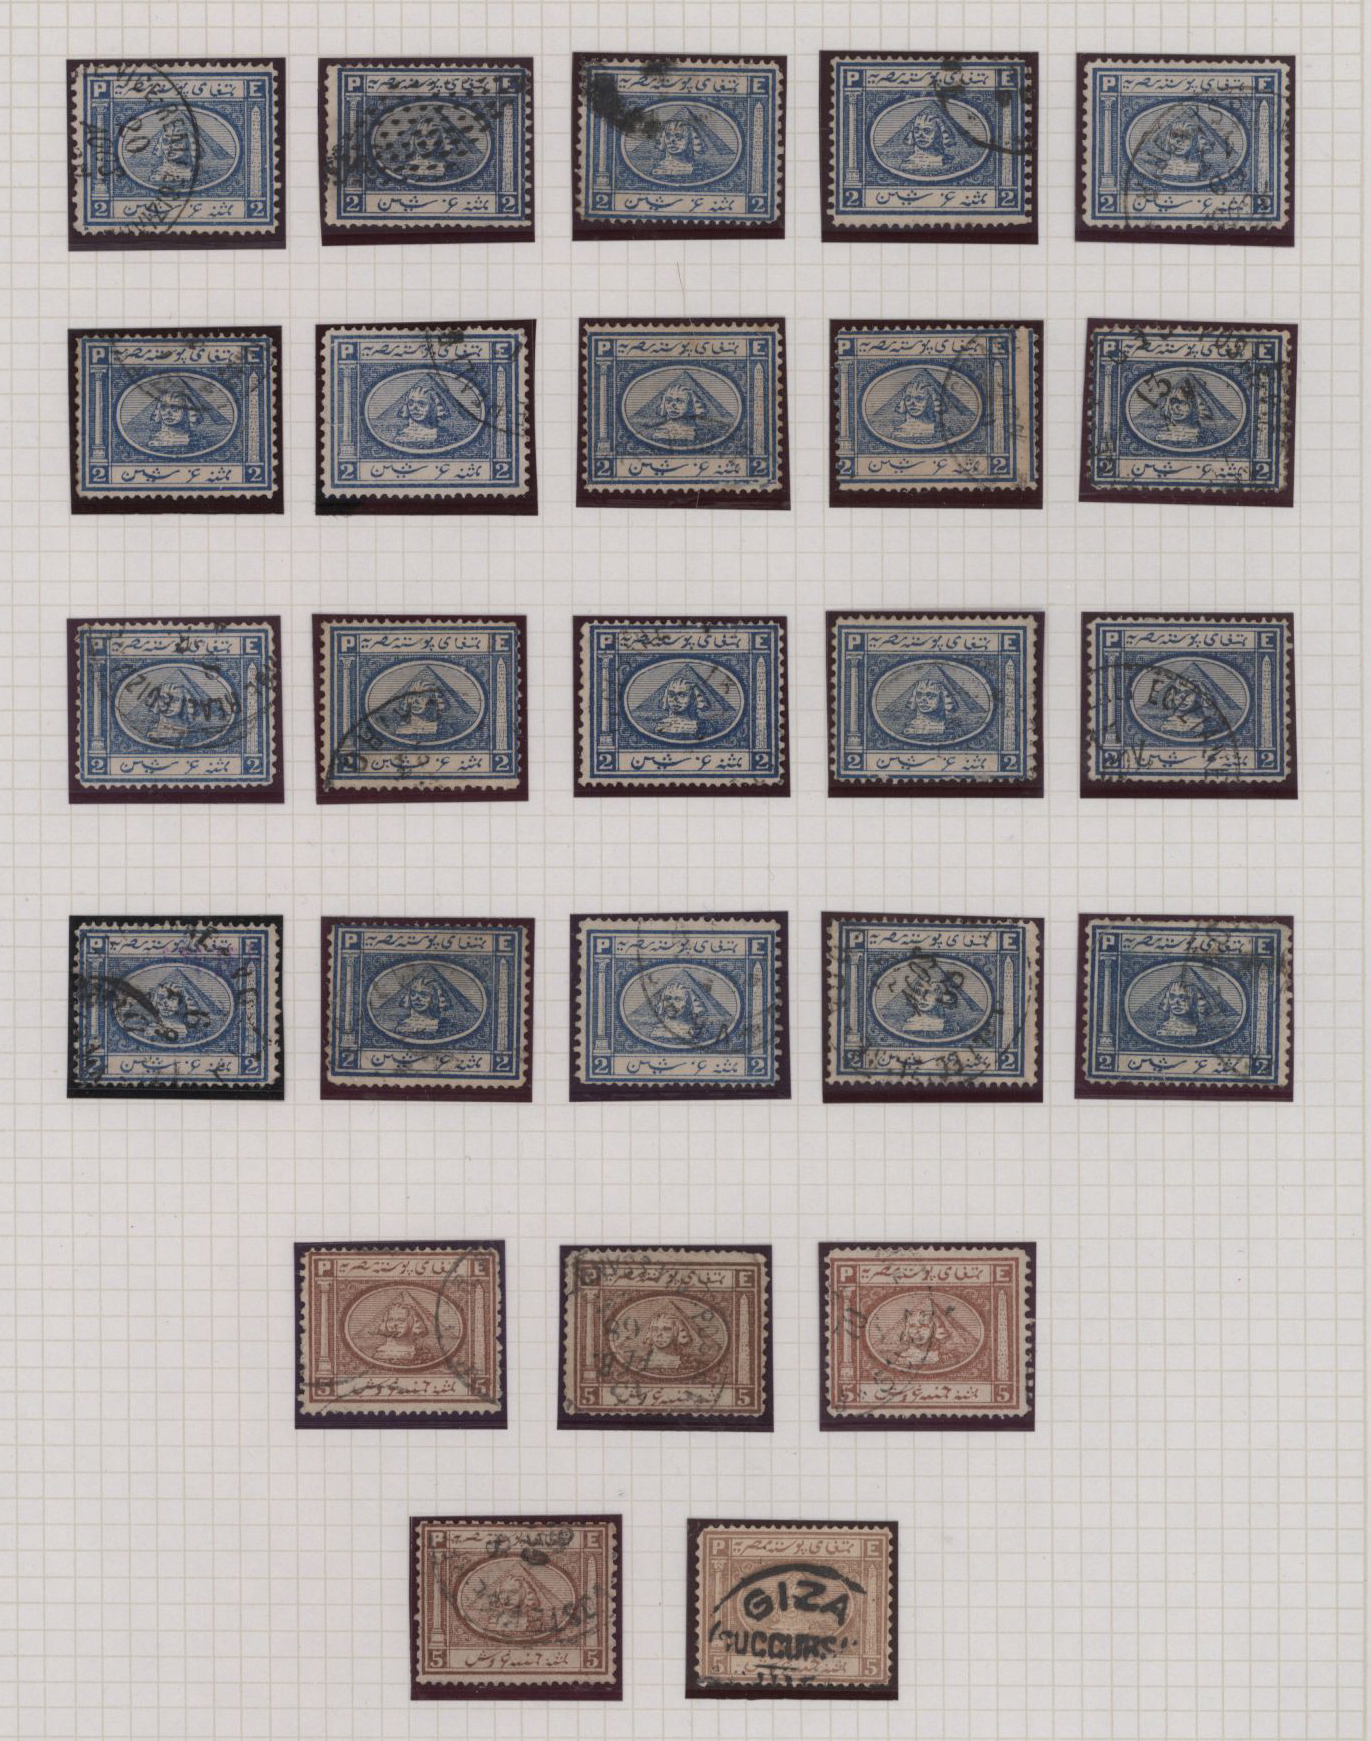 Lot 16012 - ägypten  -  Auktionshaus Christoph Gärtner GmbH & Co. KG Sale #49 Collections Overseas, Thematics, Europe, Germany/Estates